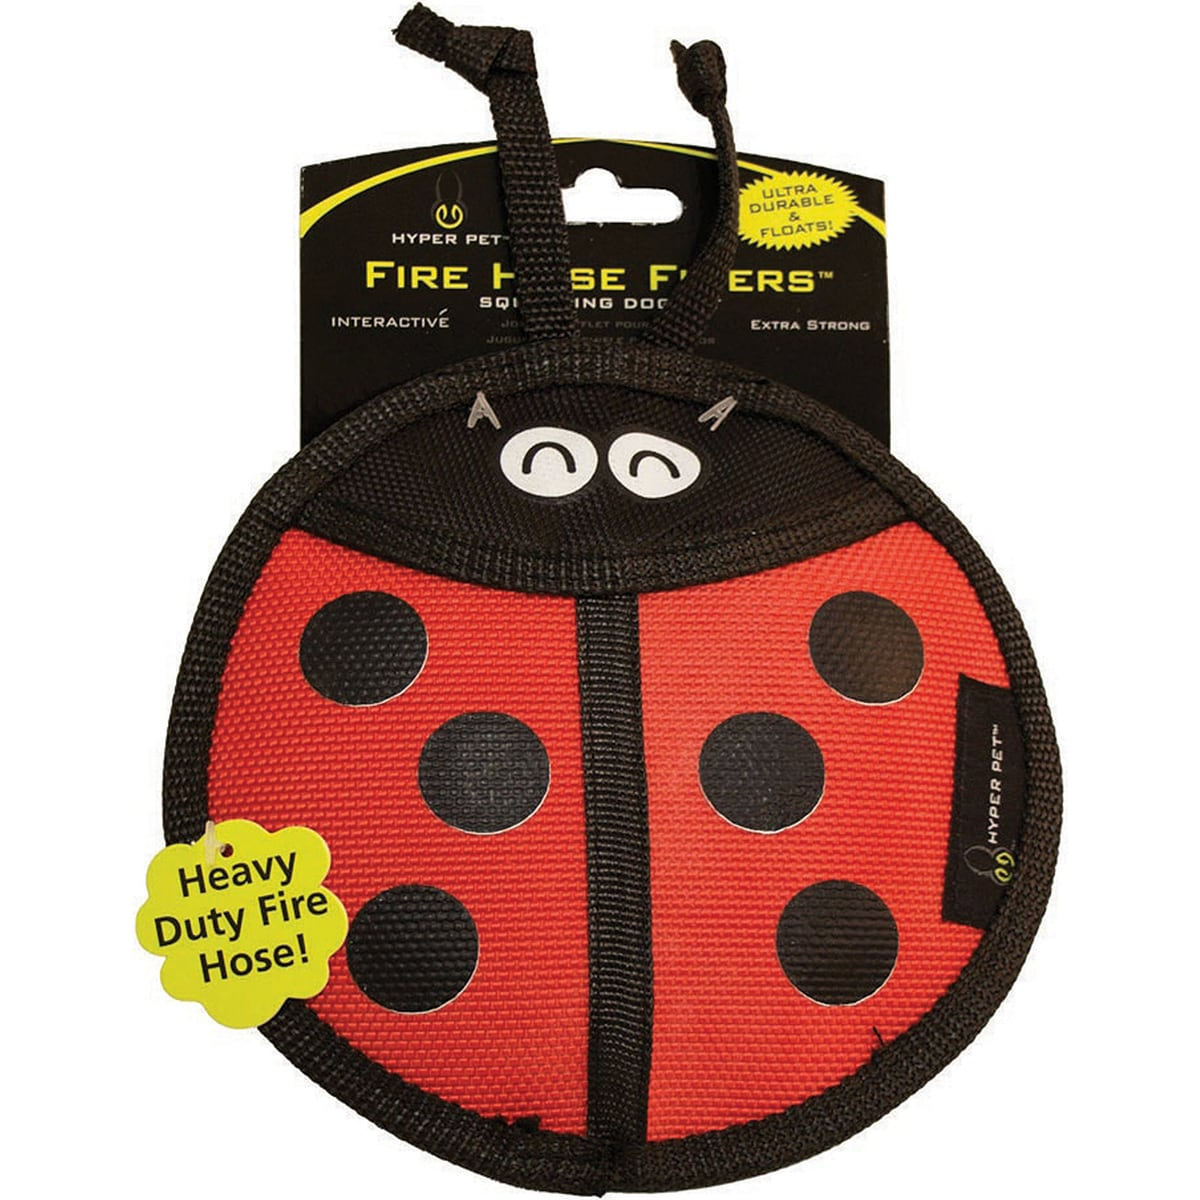 Hyper Pet Firehose Flyers Dog Toy (Bumble Bee), Multi